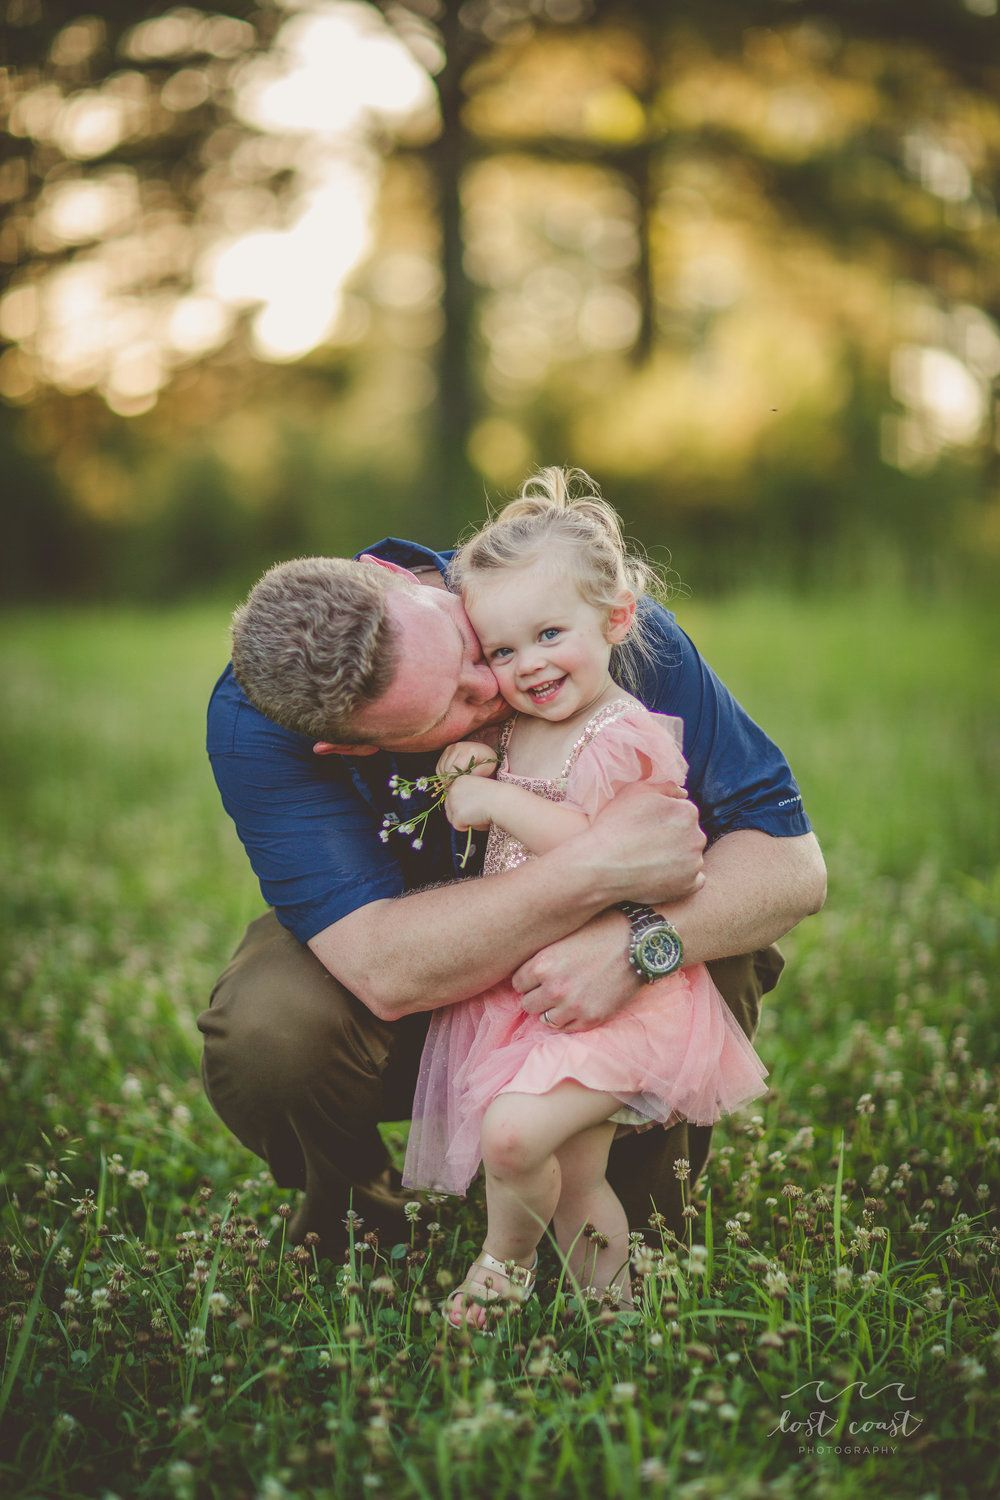 A Daddy-Daughter Photo Session — The Overwhelmed Mommy